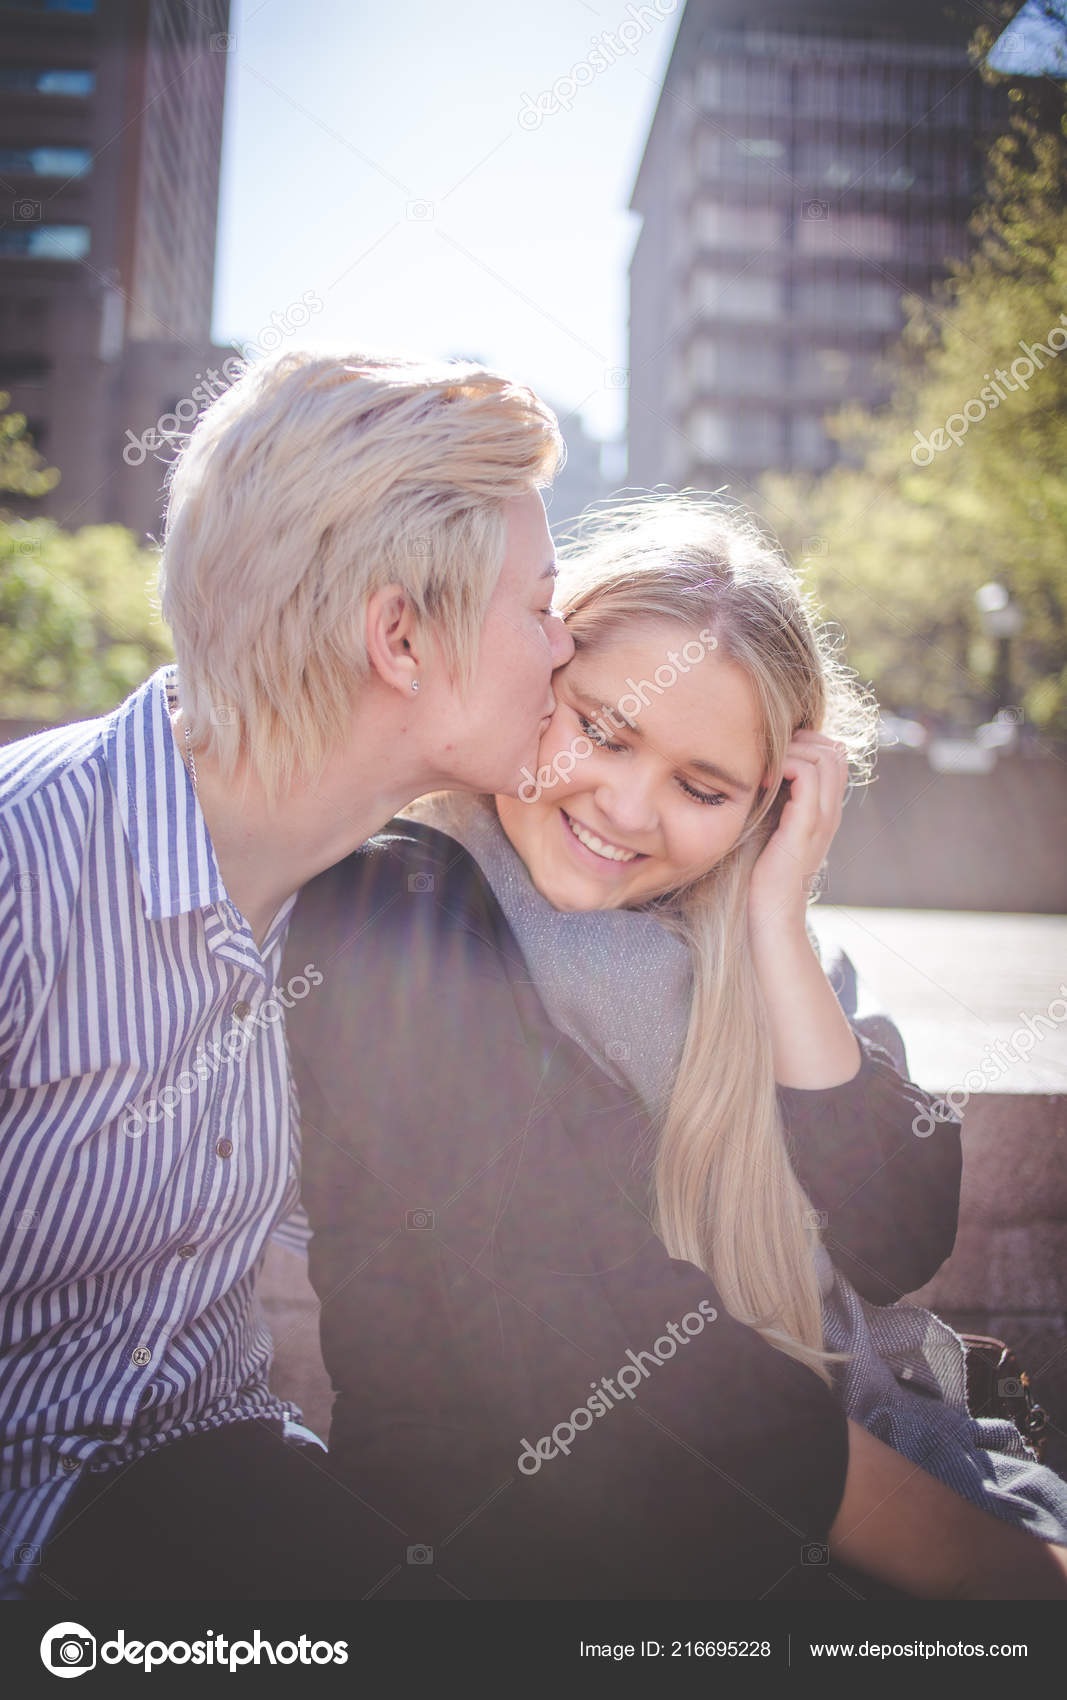 Lesbian dating in south africa